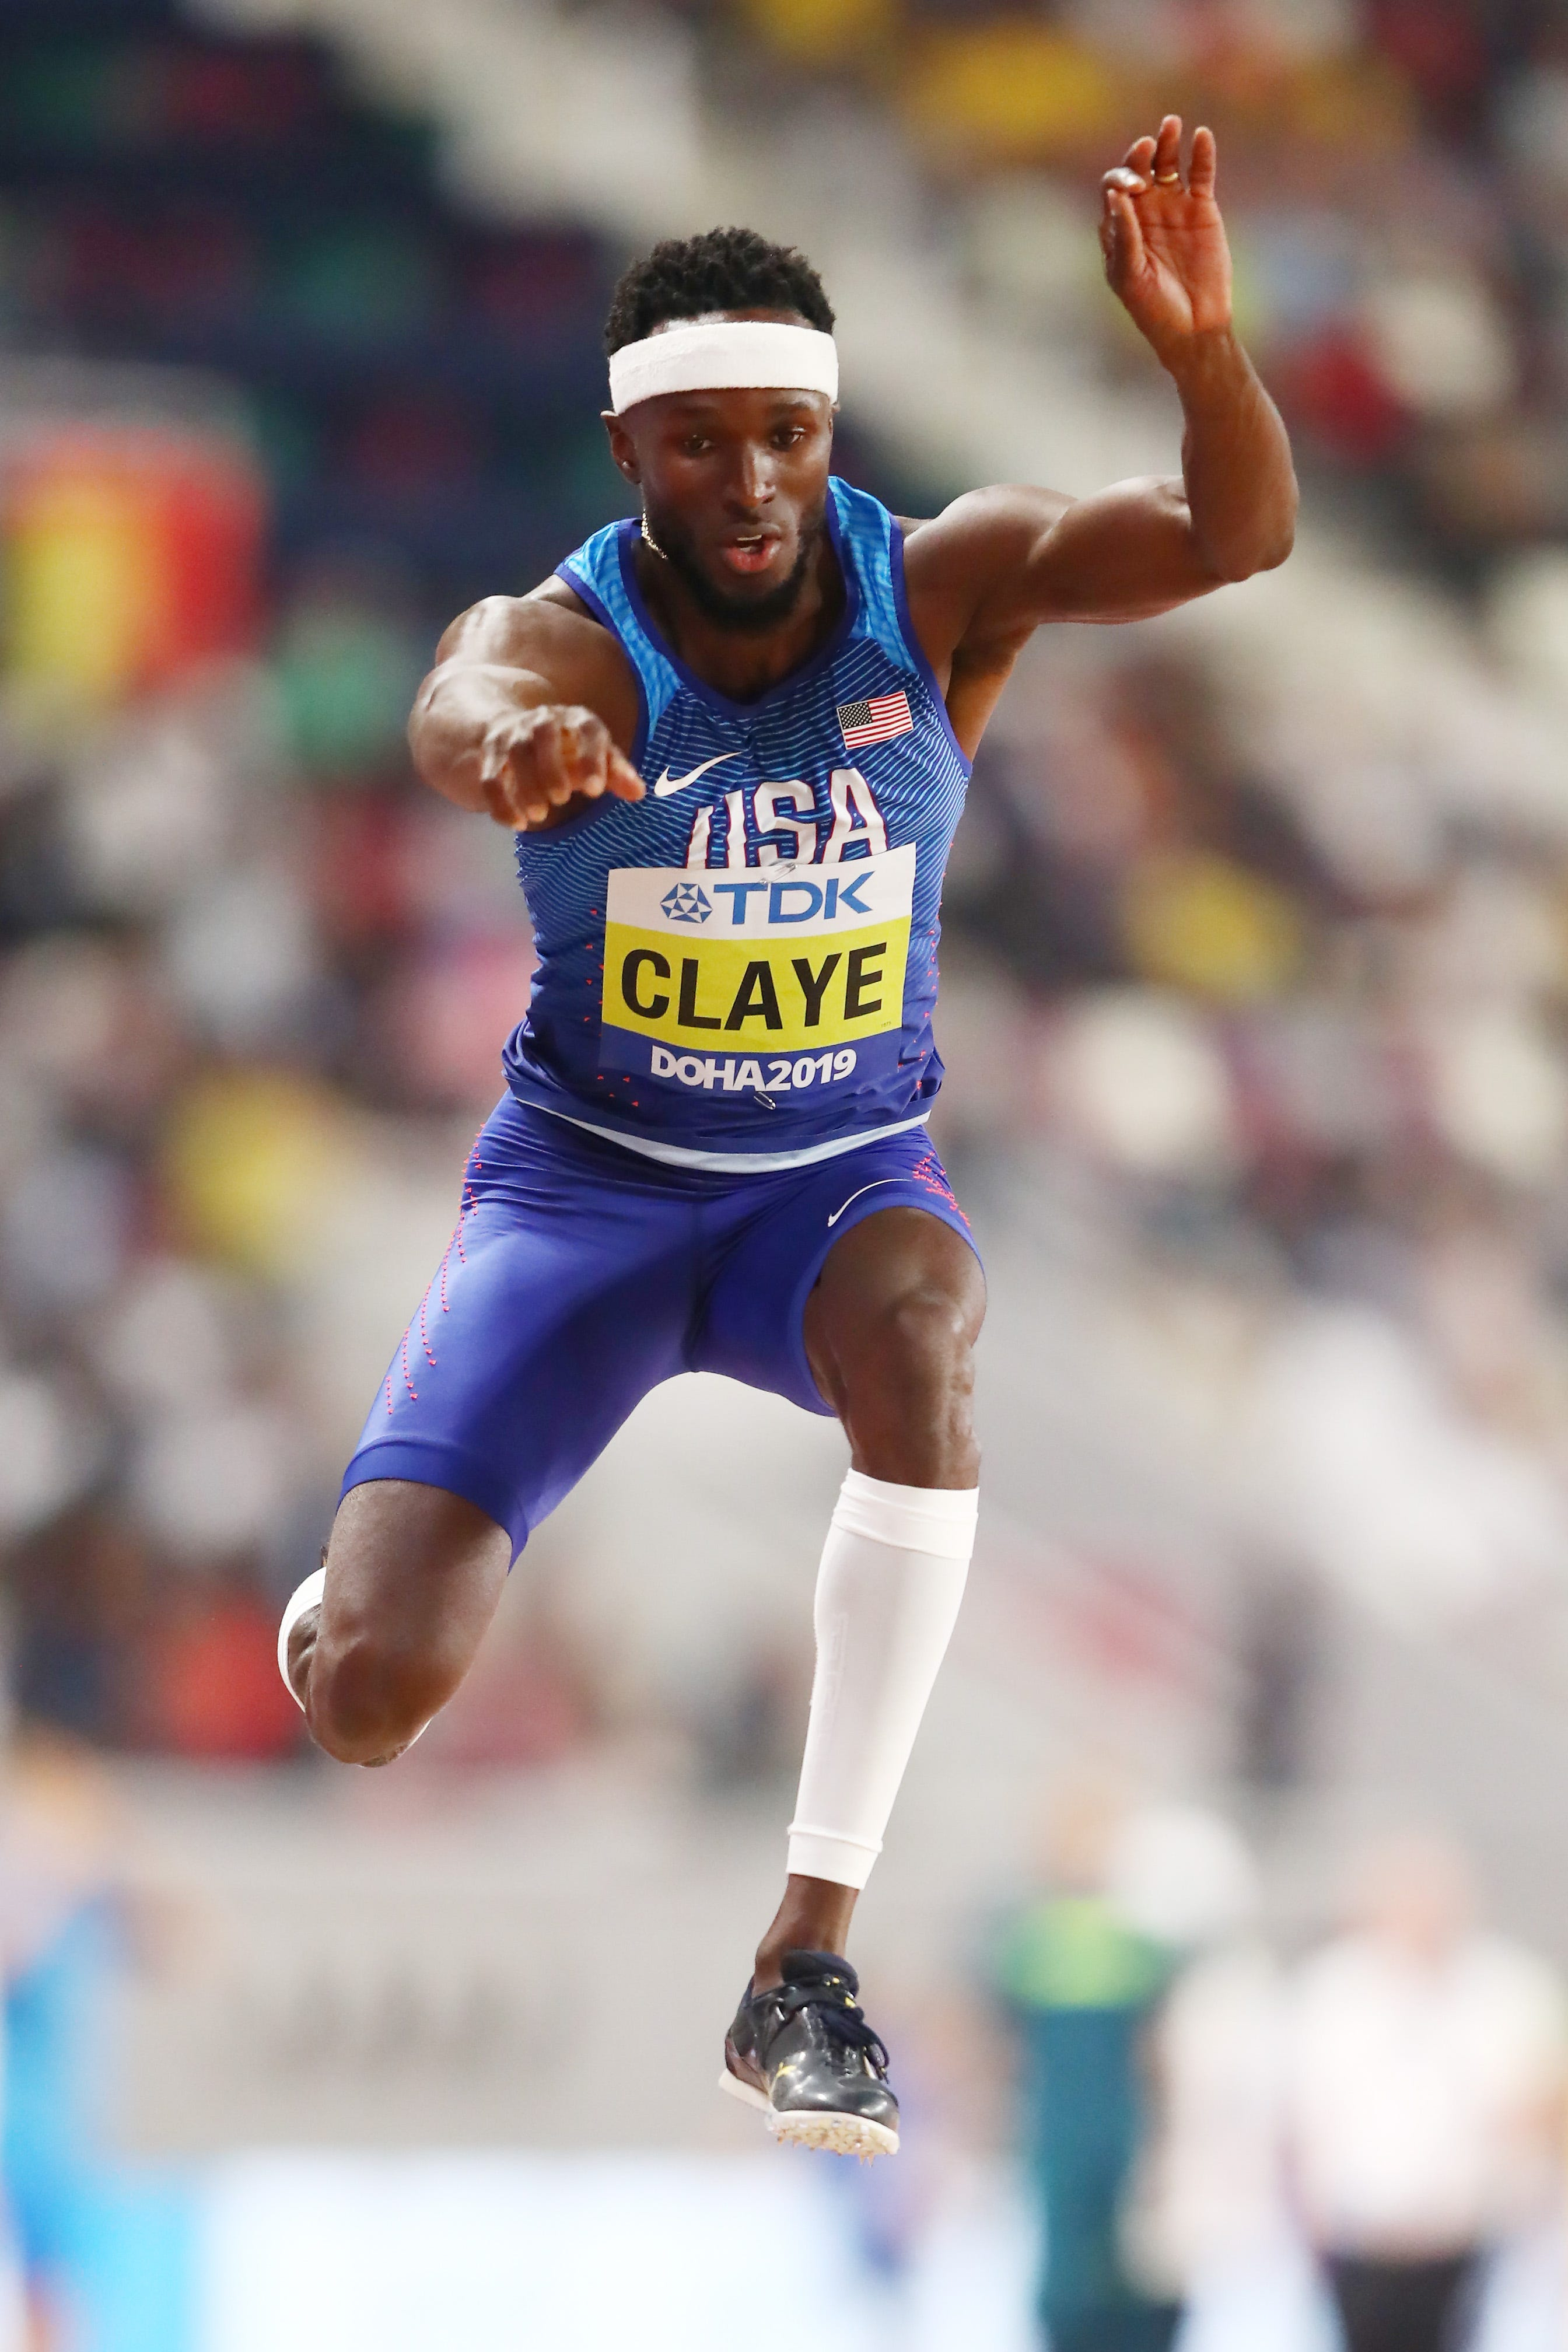 Triple jumper Will Claye reminds fellow Olympians 'Dreams Don't Die'